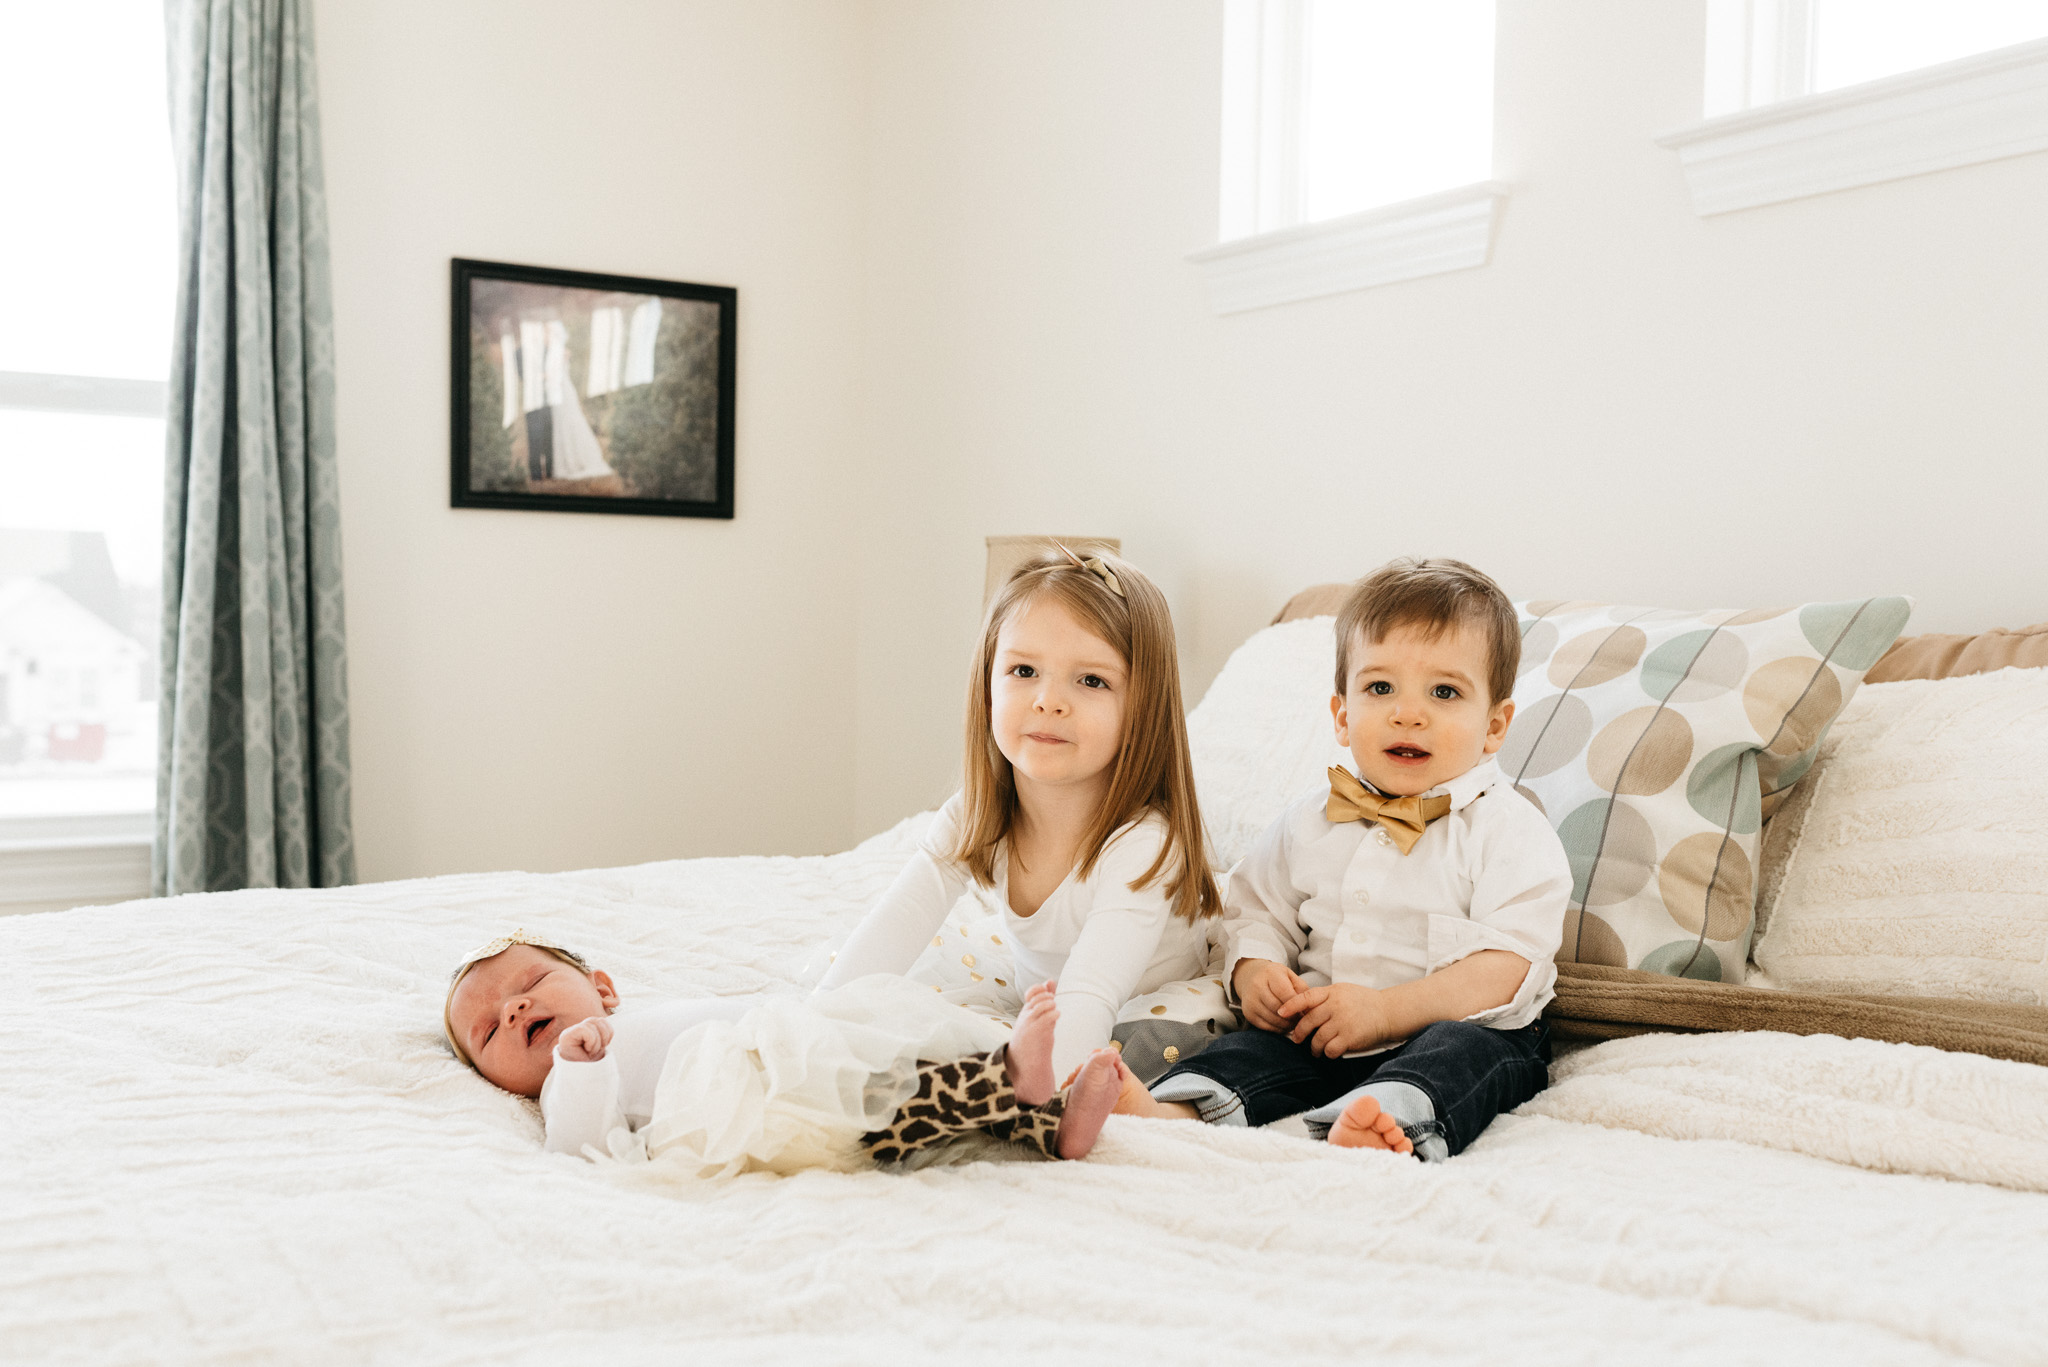 siblings-with-new-baby-sister-Columbus-Ohio-Photographer-Erika-Venci-Photography